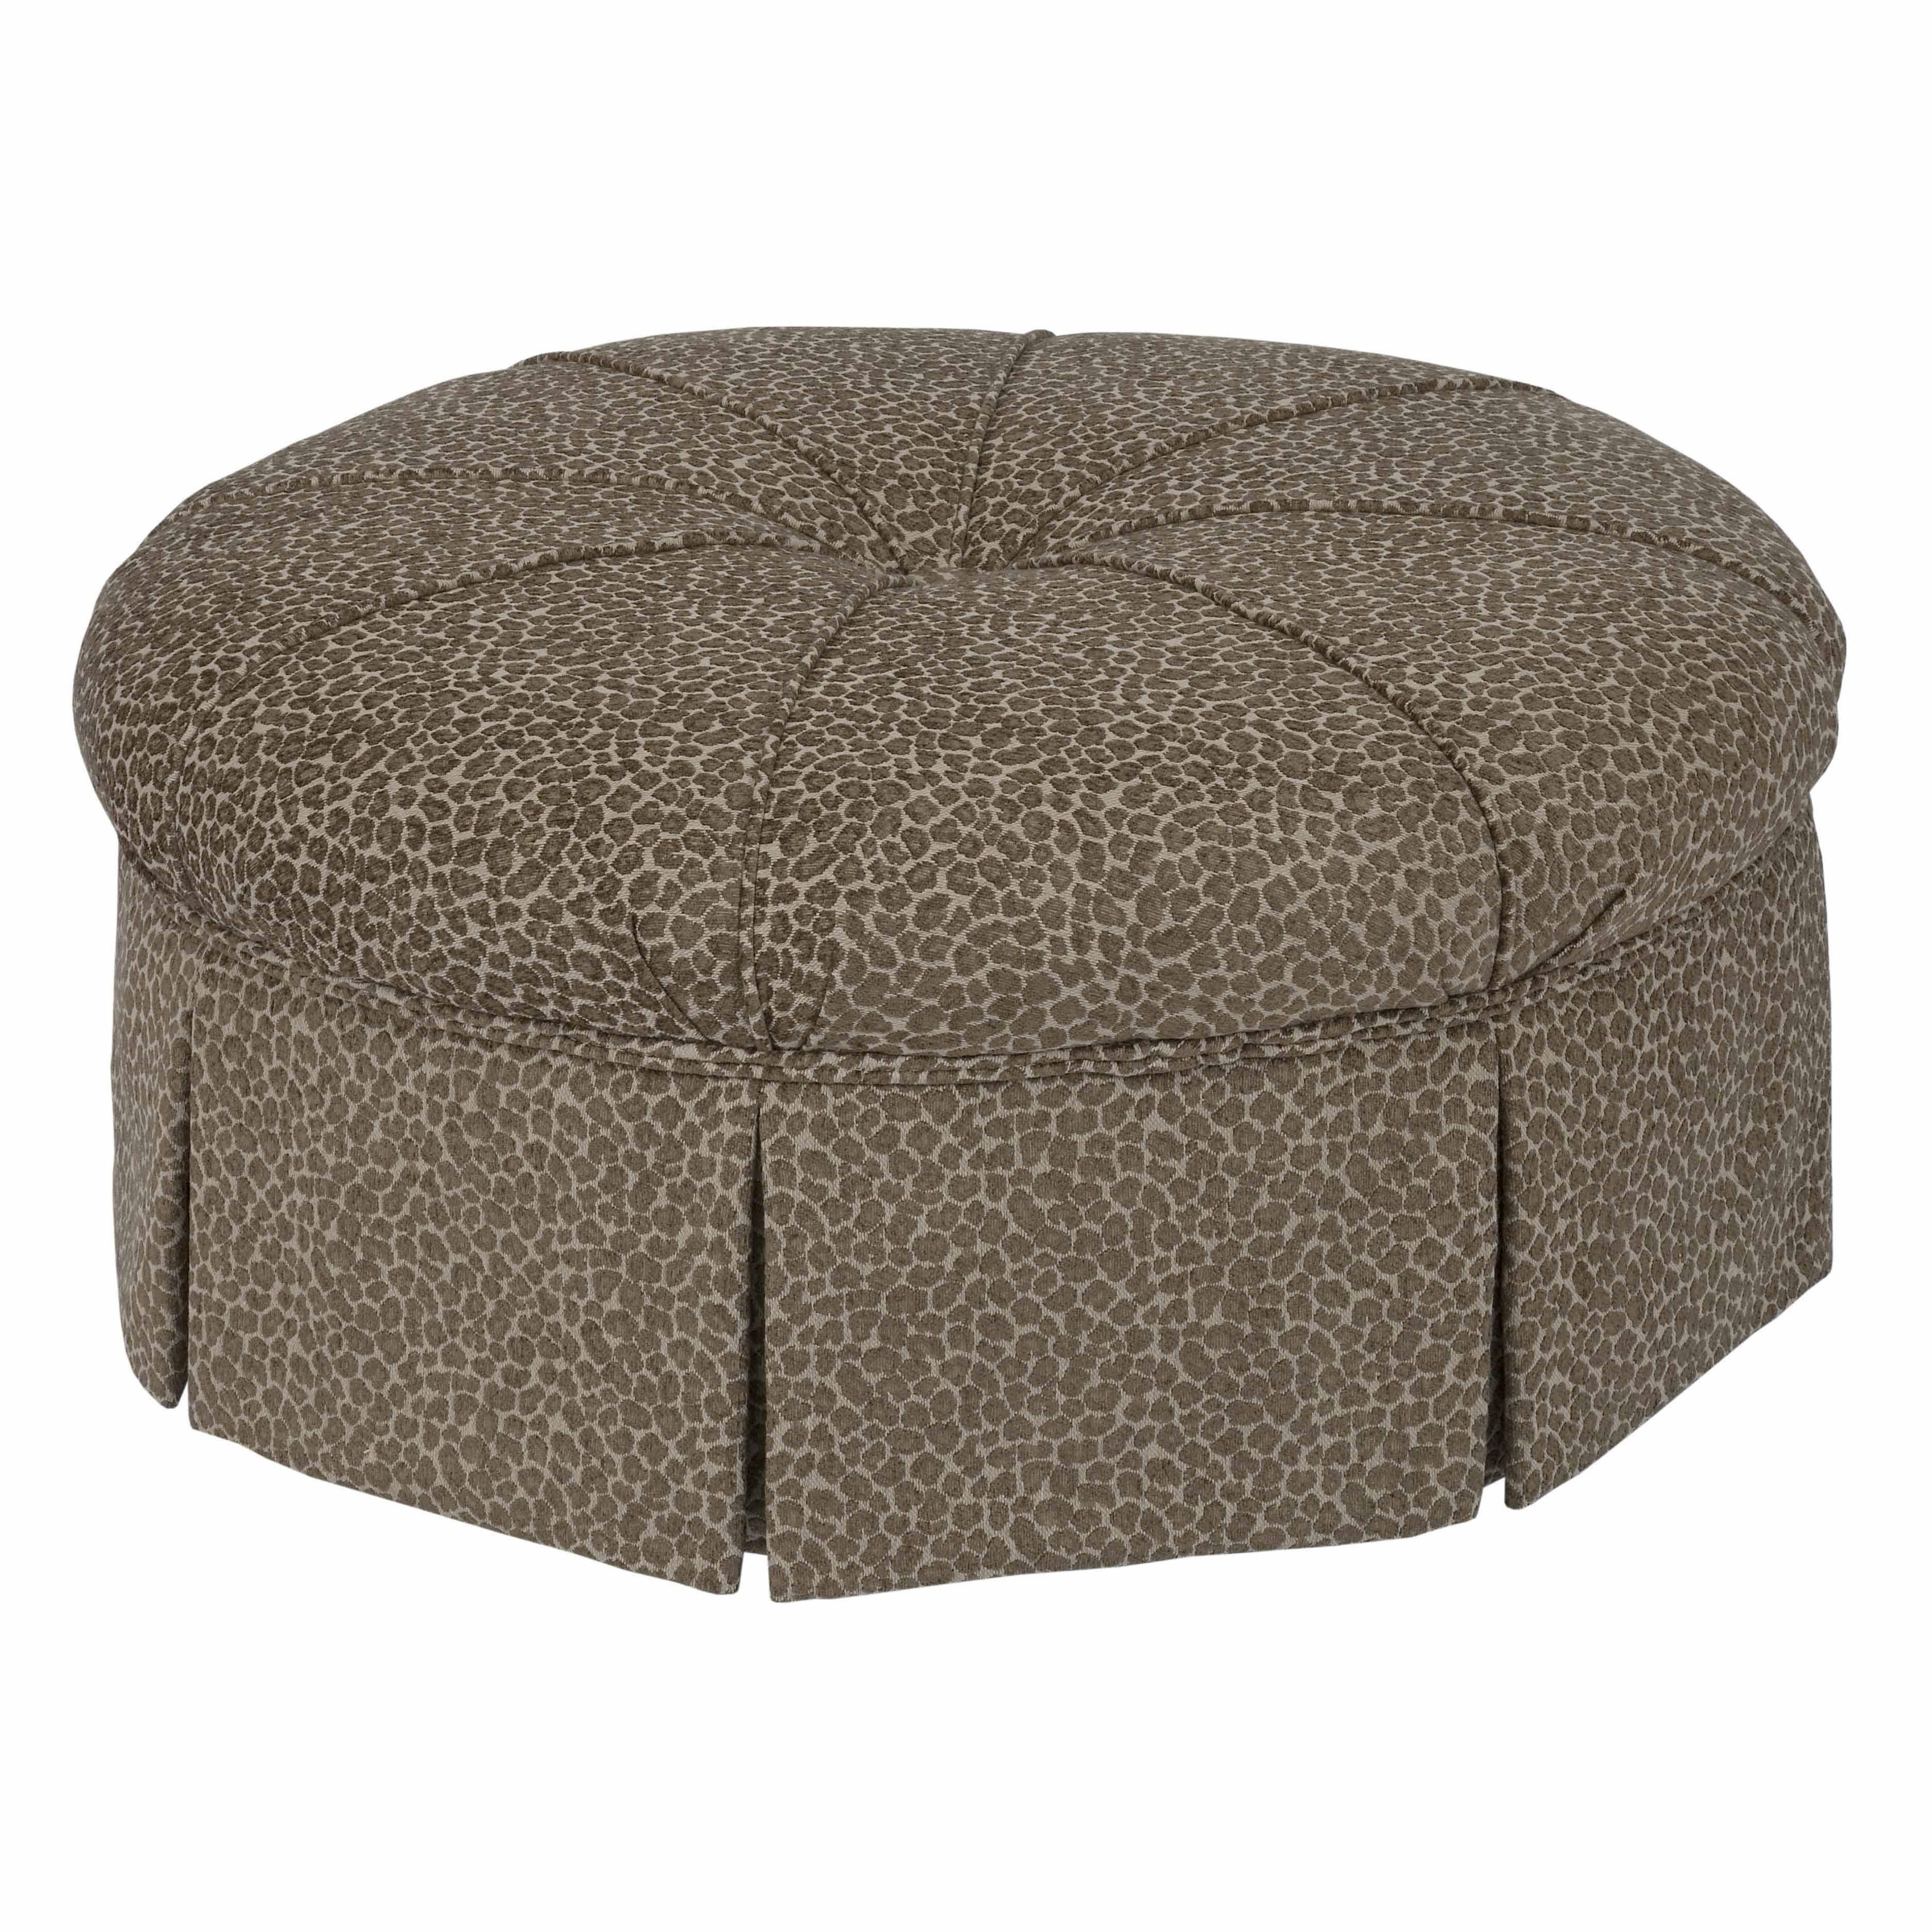 Best Accent Chairs Round Ottoman By Kincaid Furniture Kincaid 400 x 300